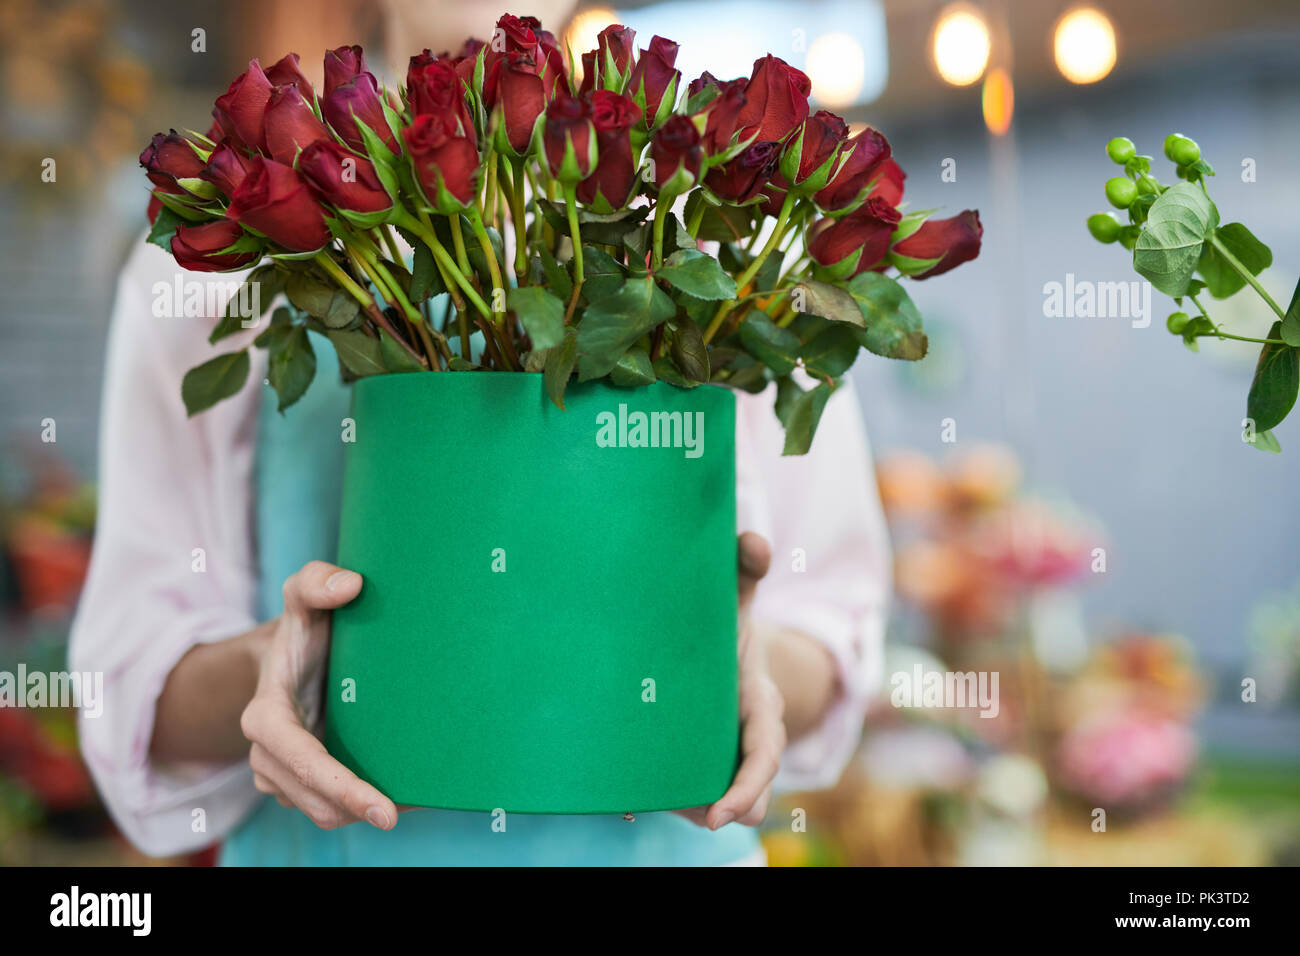 Florist Holding Roses Stock Photo